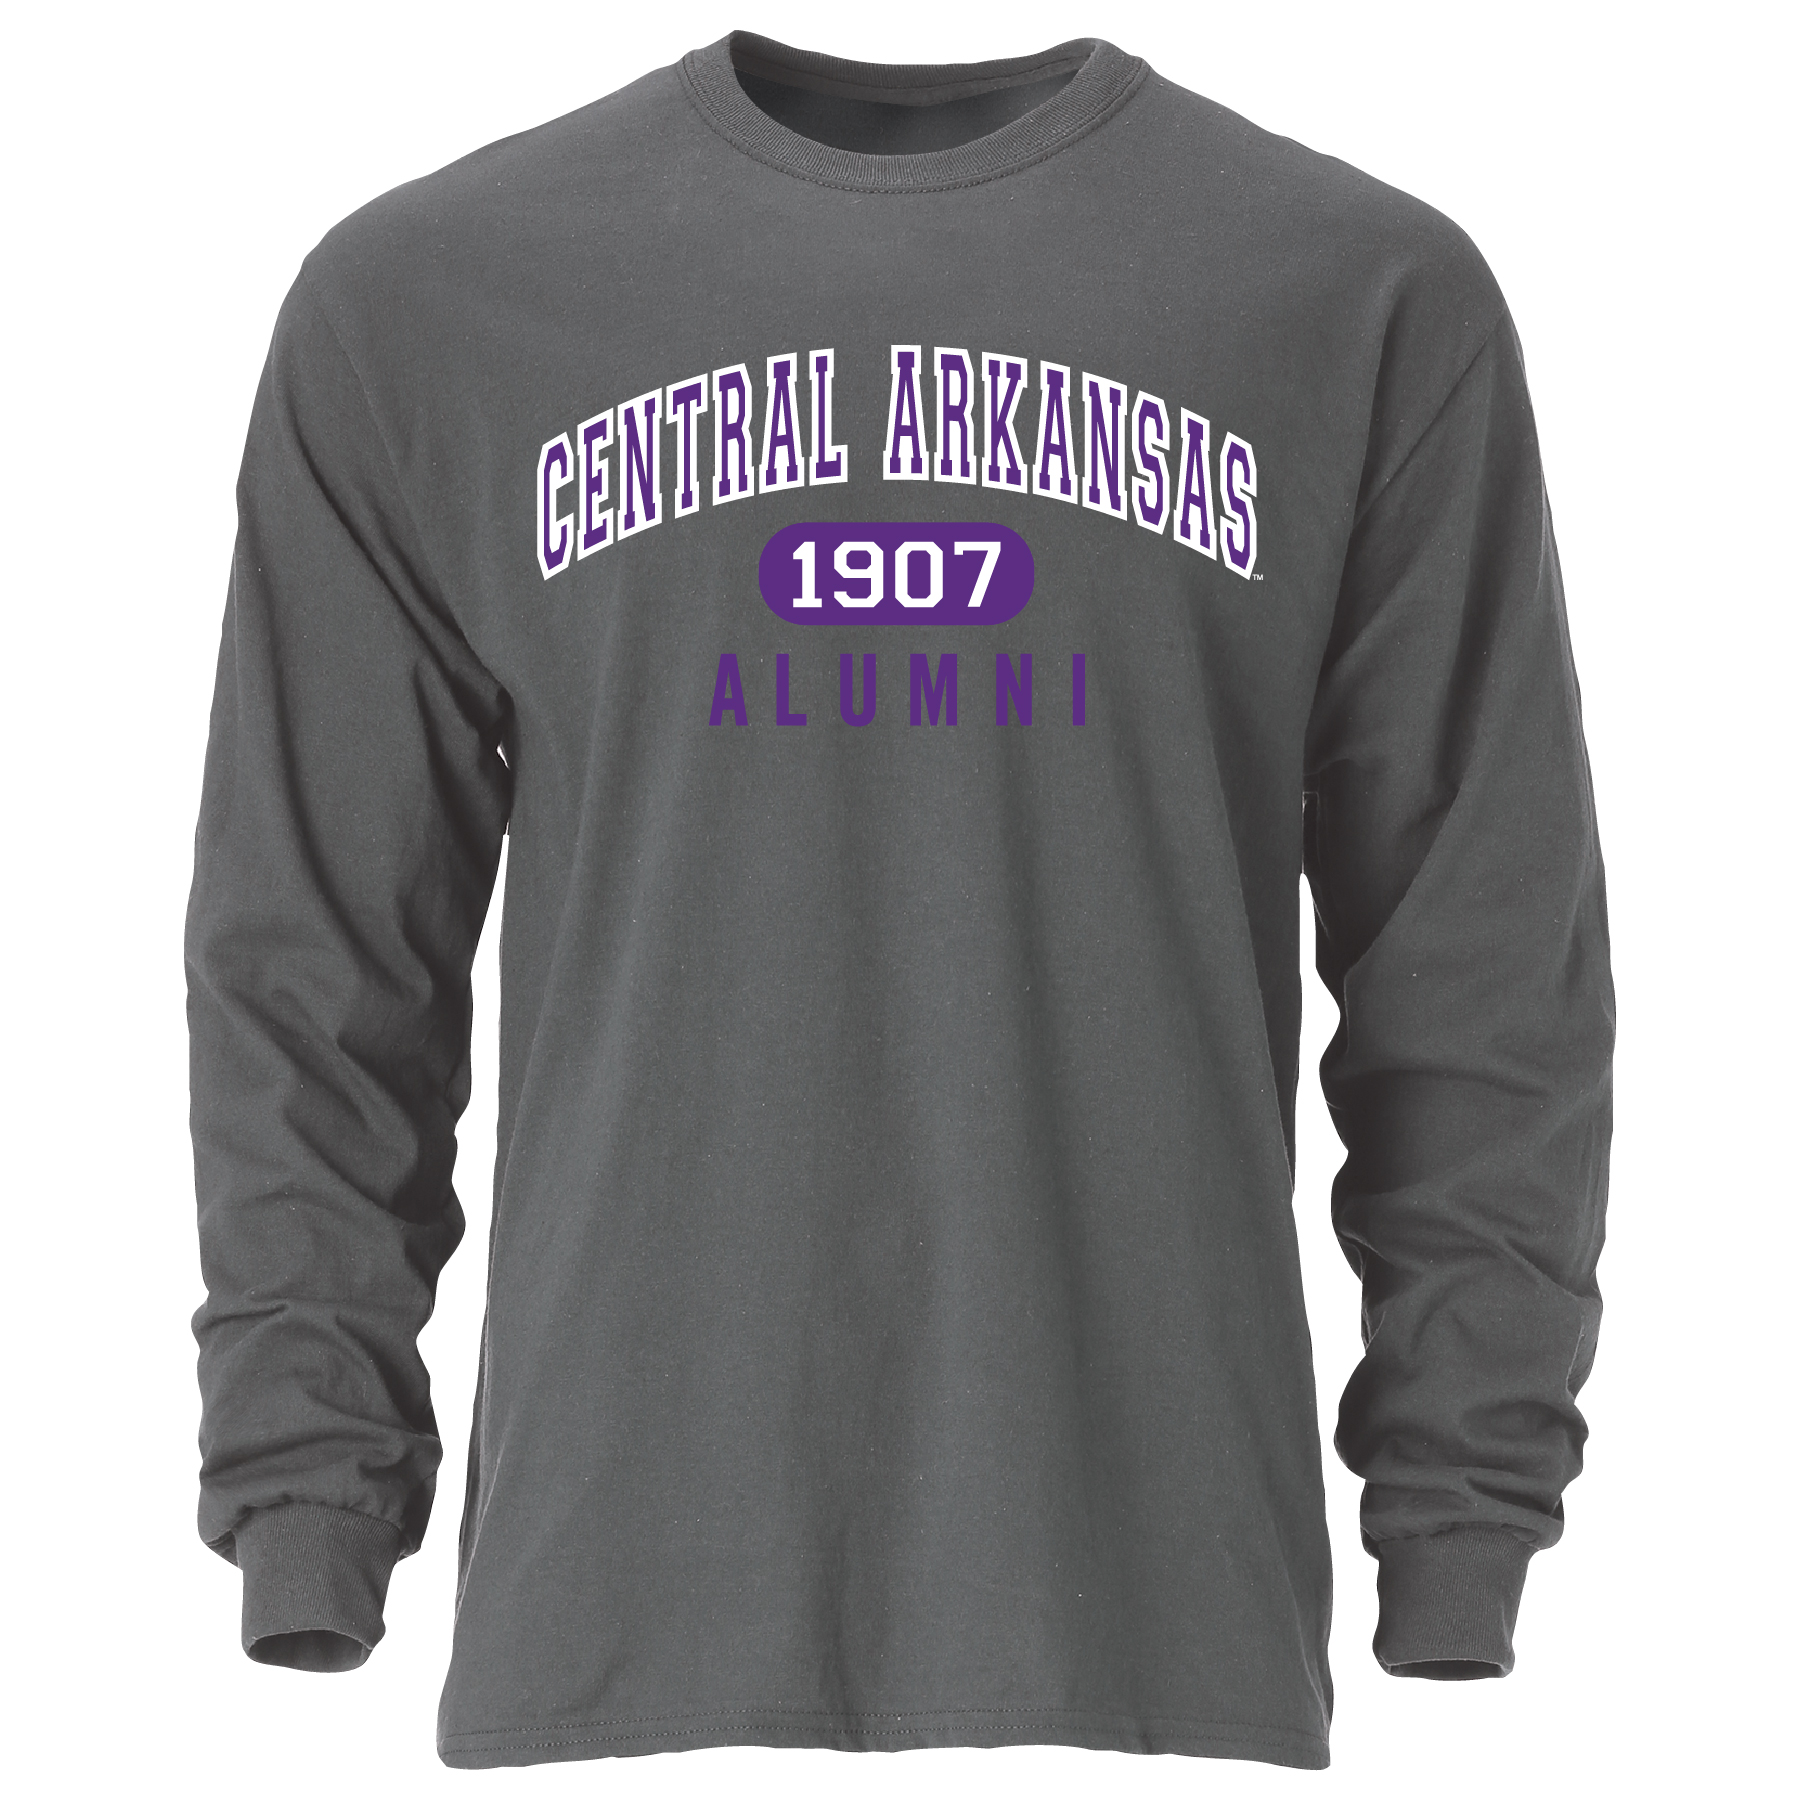 Central Arkansas Alumni LS Tee